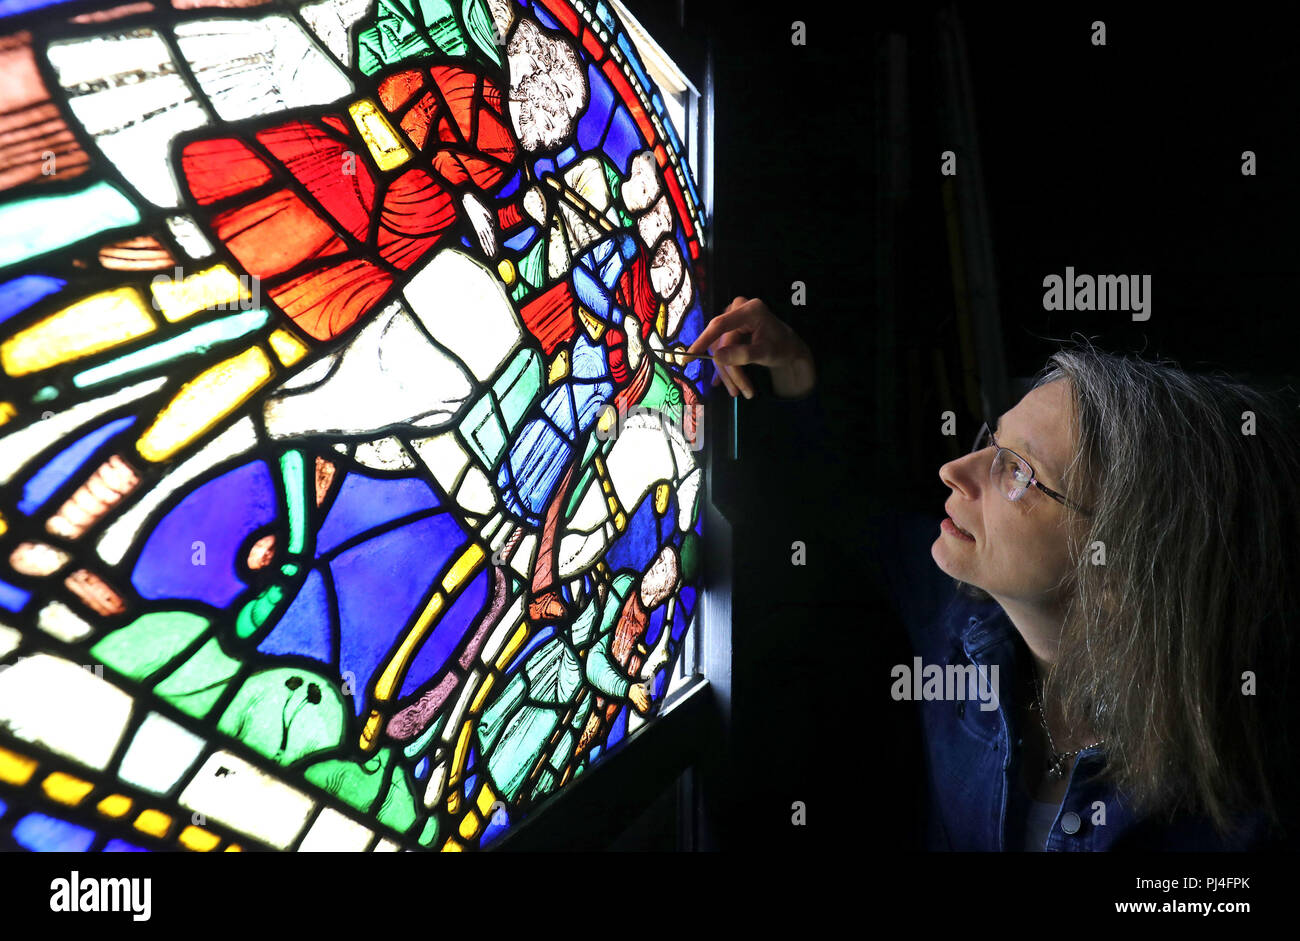 Dr. Rachel Koopmans, Associate Professor of History at York University in Toronto, views stained glass panels at Canterbury Cathedral in Kent, which were previously thought to be the work of Victorian restorers but have been found to date to the late 12th century, making them the earliest known art works depicting pilgrims travelling to Canterbury. - Stock Image